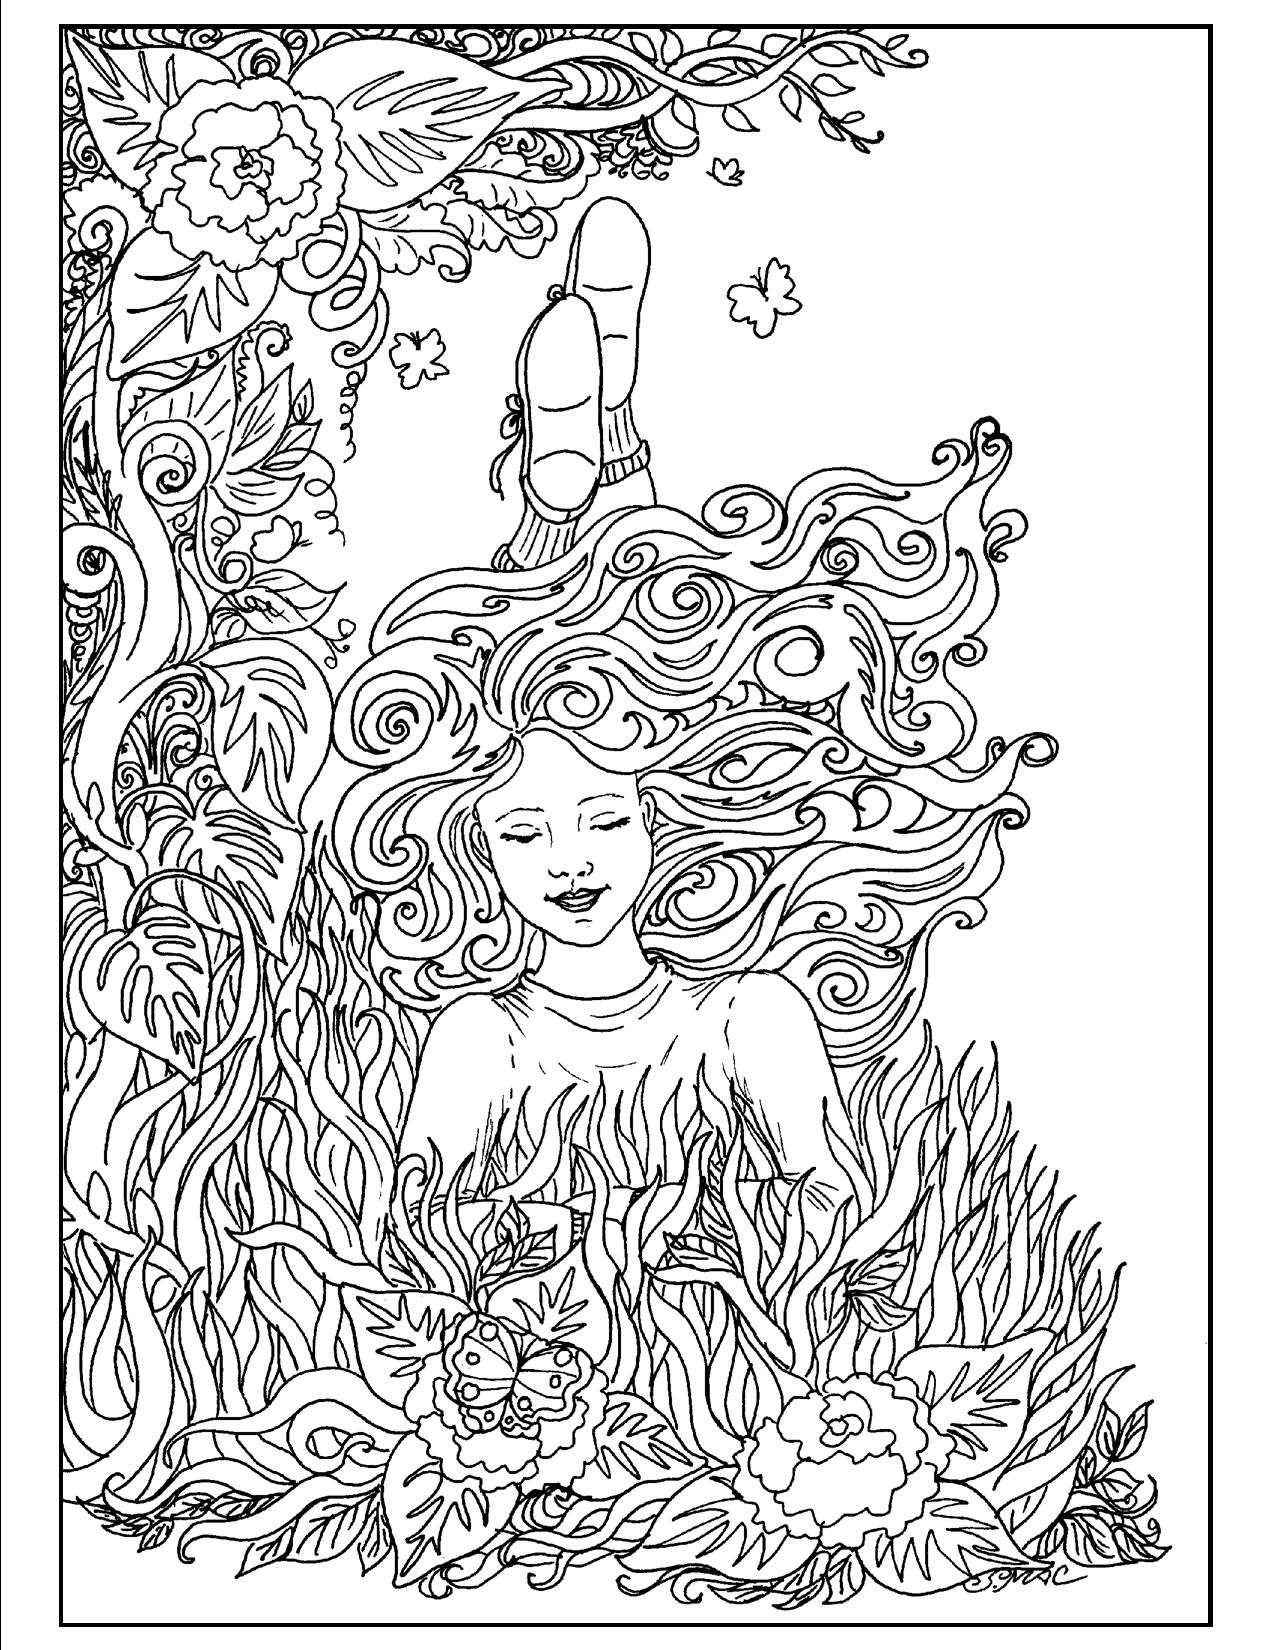 coloring art pages art therapy coloring pages to download and print for free pages coloring art 1 1